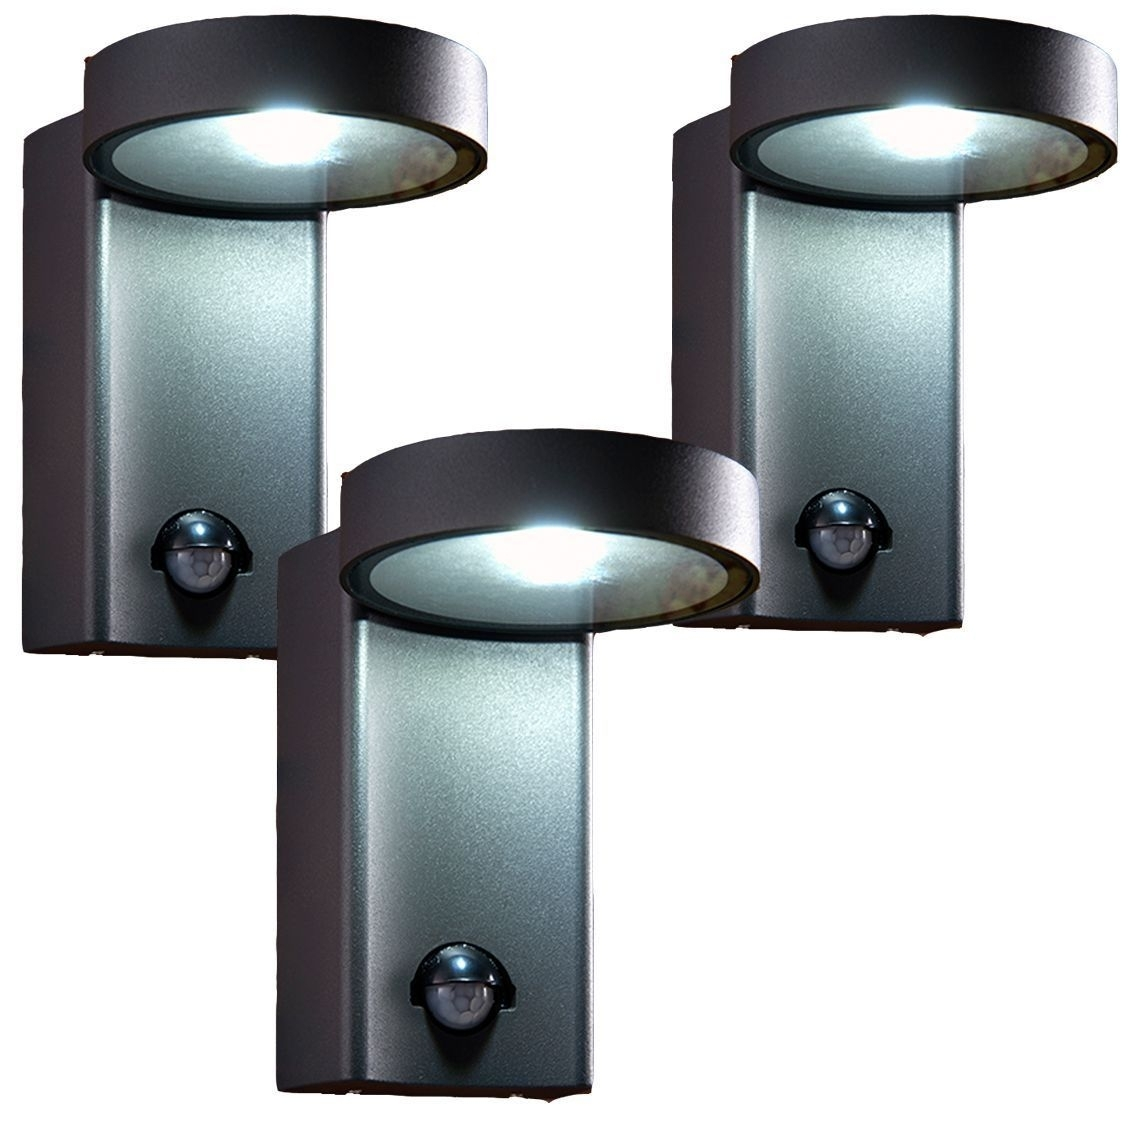 Inspiration about 3 X Saxby 67696 Oreti Pir Dark Matt Anthracite 10W Ip44 Outdoor Wall Intended For Outdoor Wall Lights With Pir (#2 of 15)